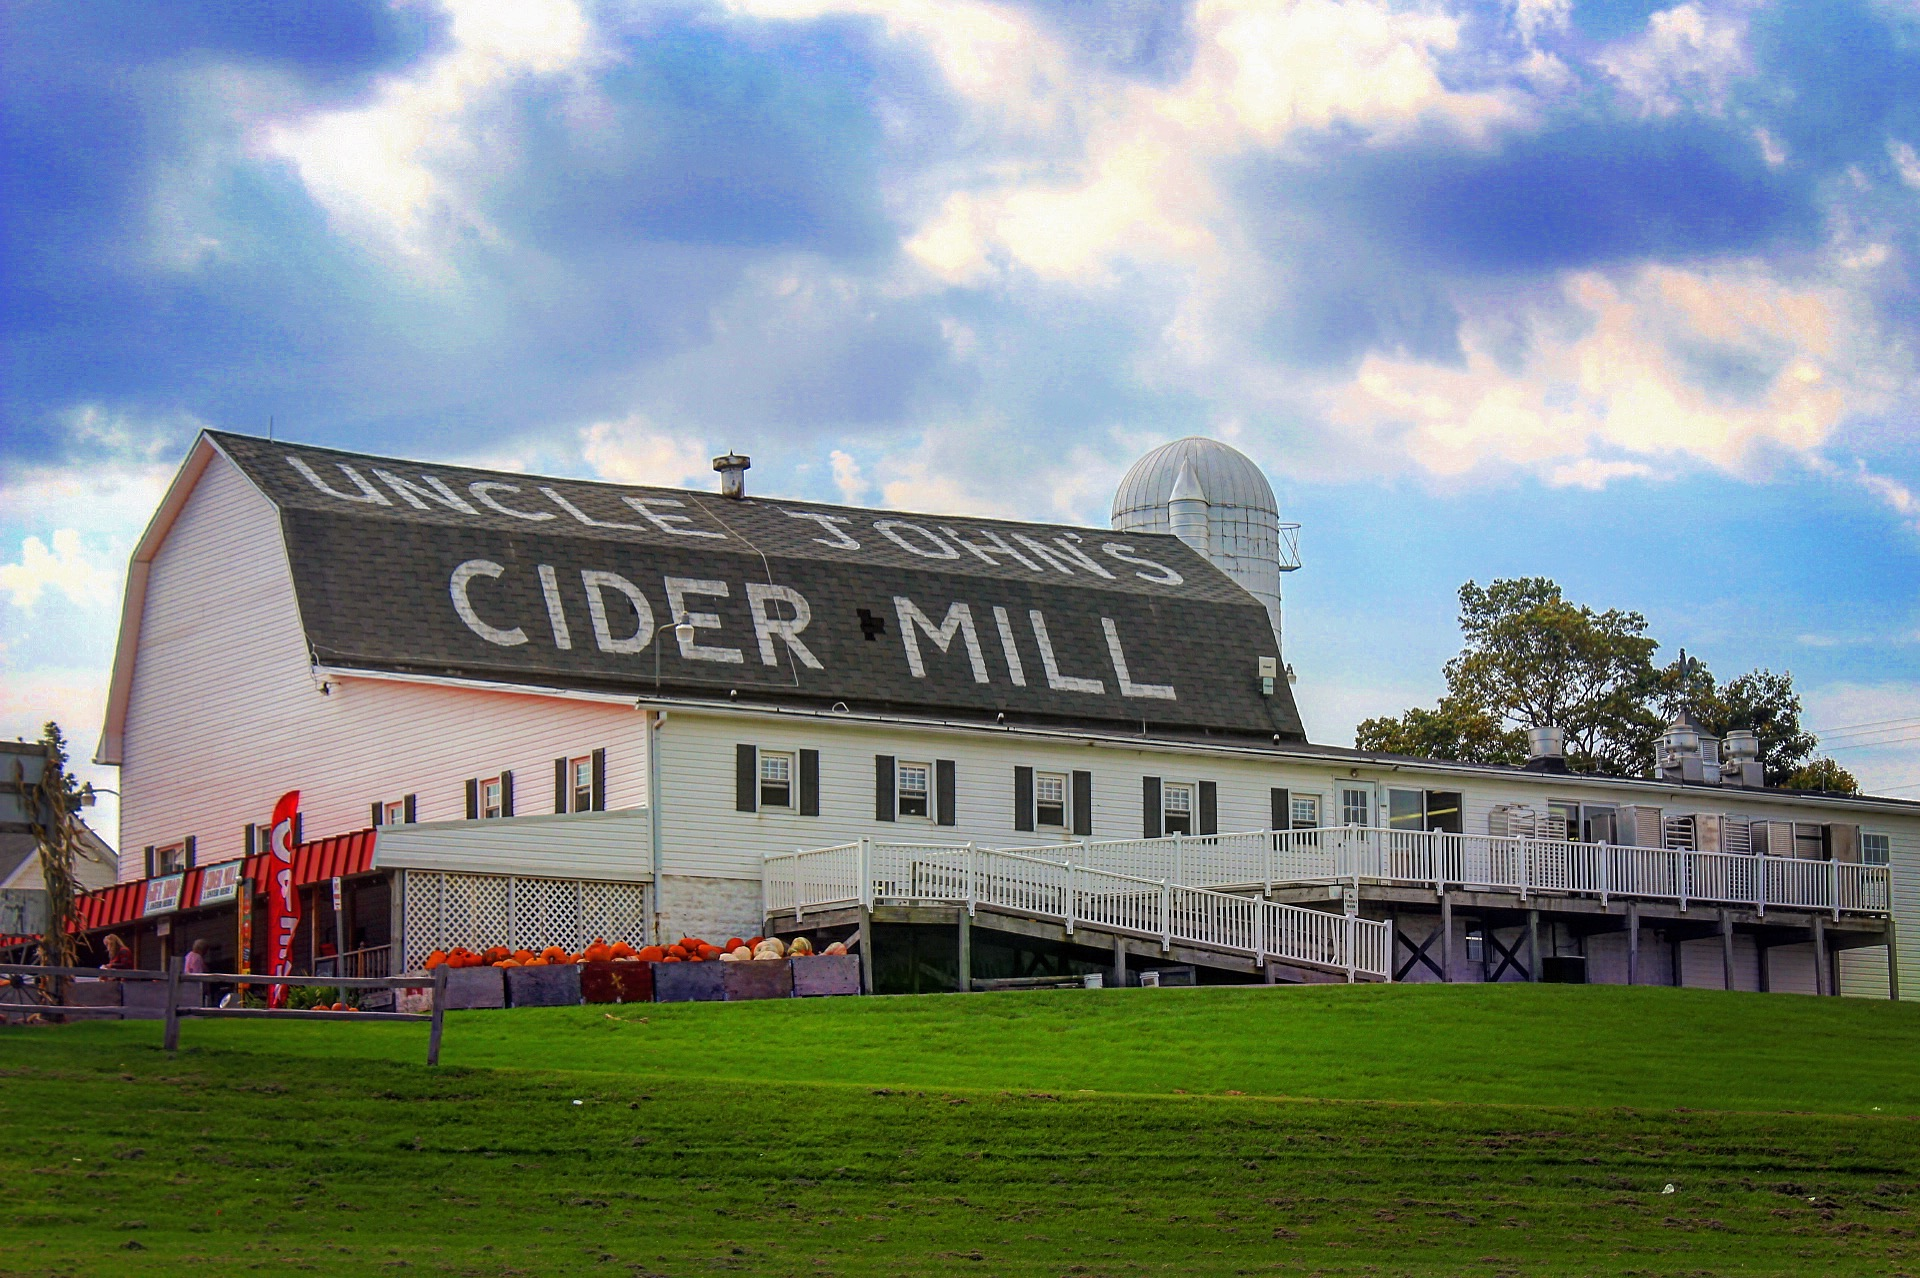 Uncle John's Cider Mill Barn Early Day